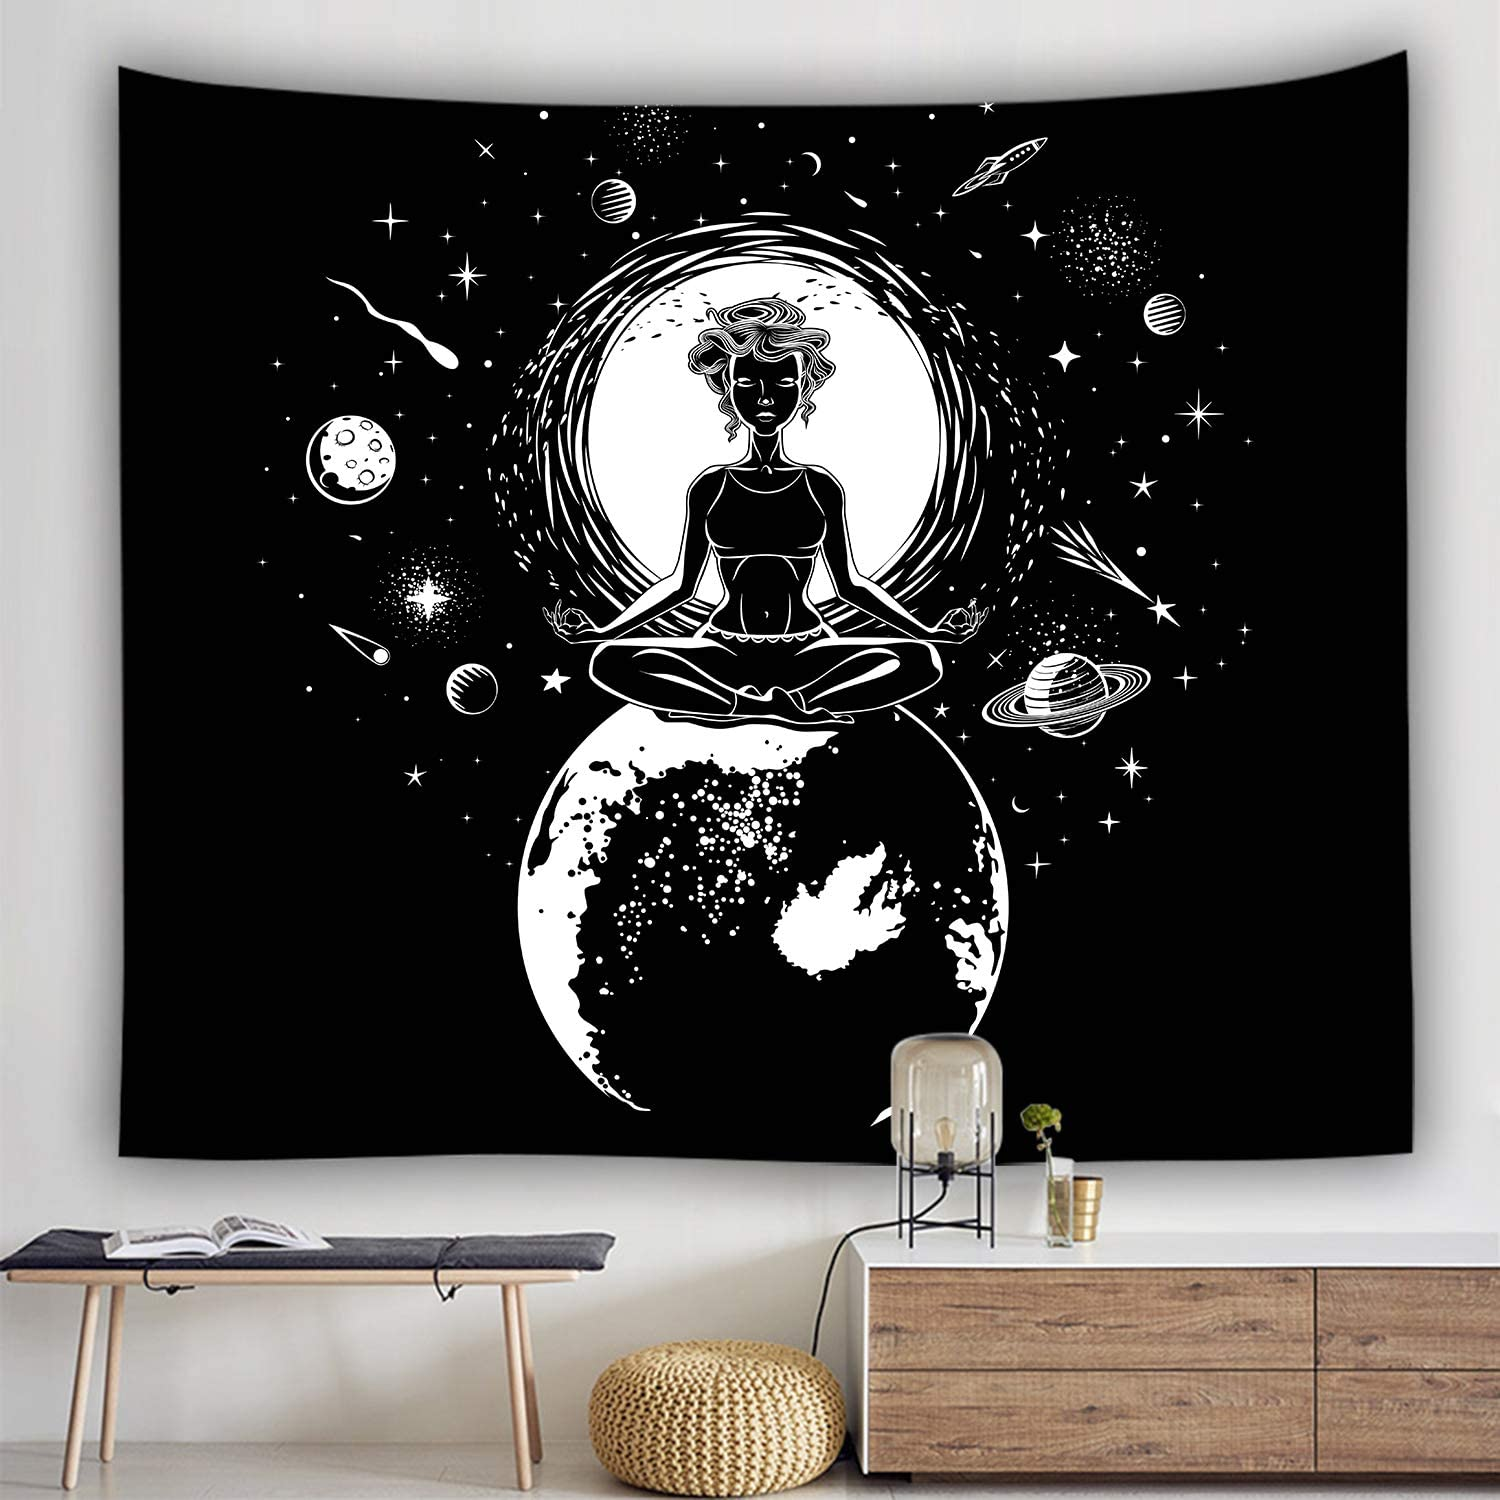 Ulogu Chakra Tapestry Wall Hanging Yoga Meditation Tapestry for Bedroom Indian Hippie Aesthetic Tapestry Wall Hanging Decor Moon Mystic Planet Wall Black and White Tapestry Decoration for Living Room